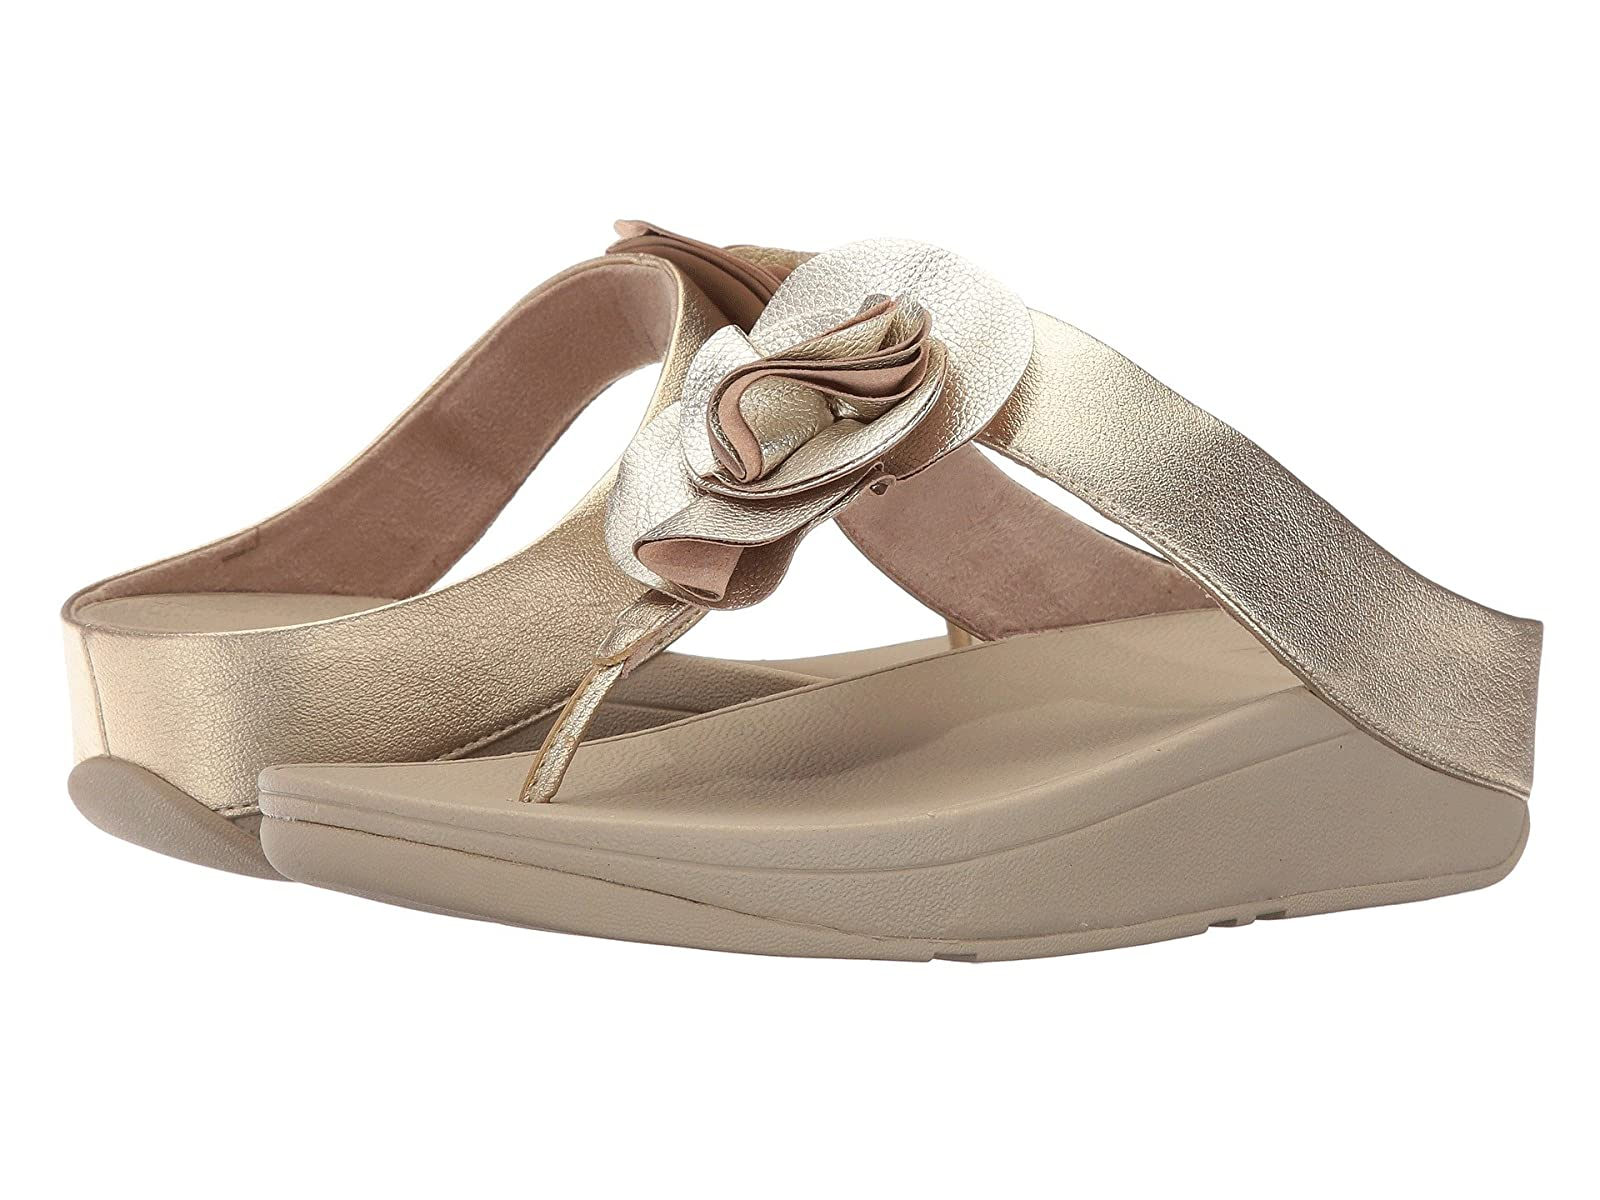 FitFlop Florrie Toe-PostCheap and distinctive eye-catching shoes